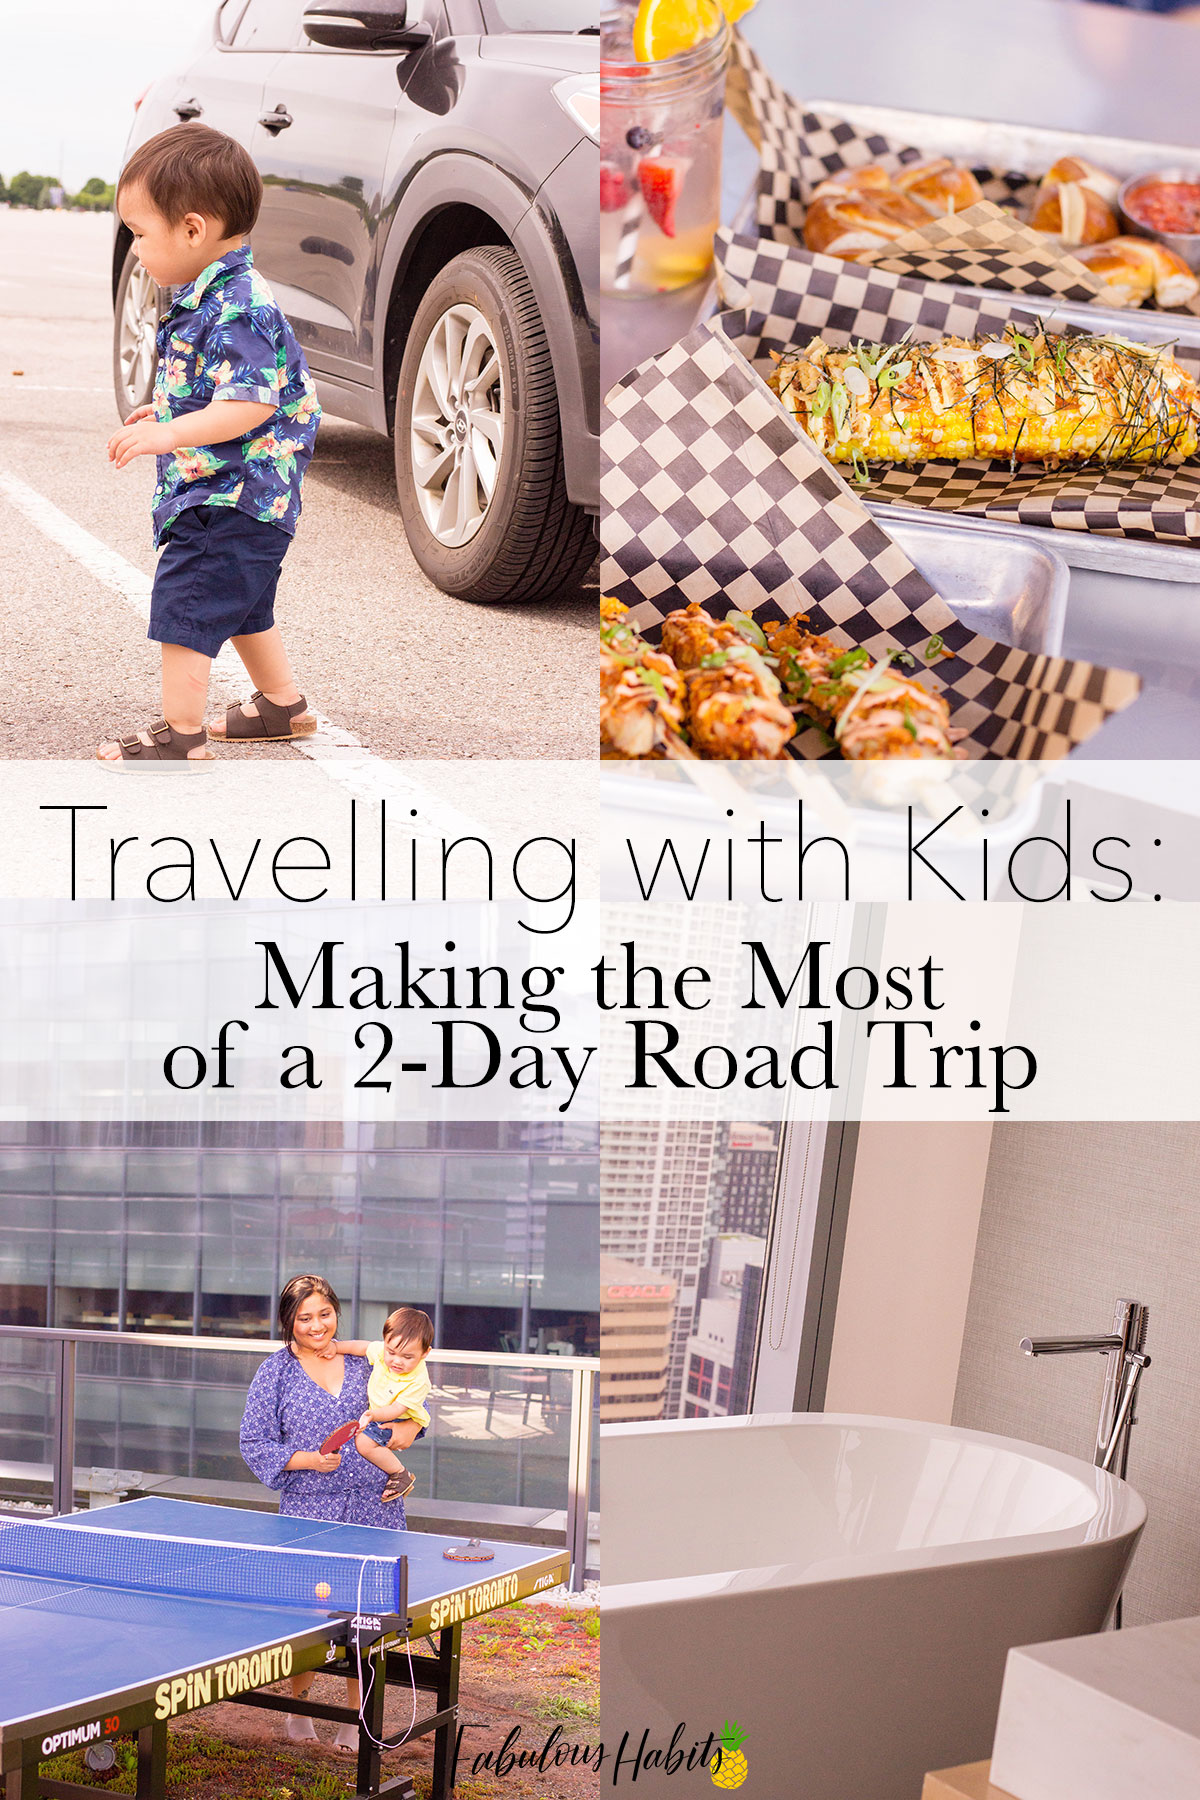 Planning on a quick family getaway? Here are some of our tips for a two-day road trip with toddlers!